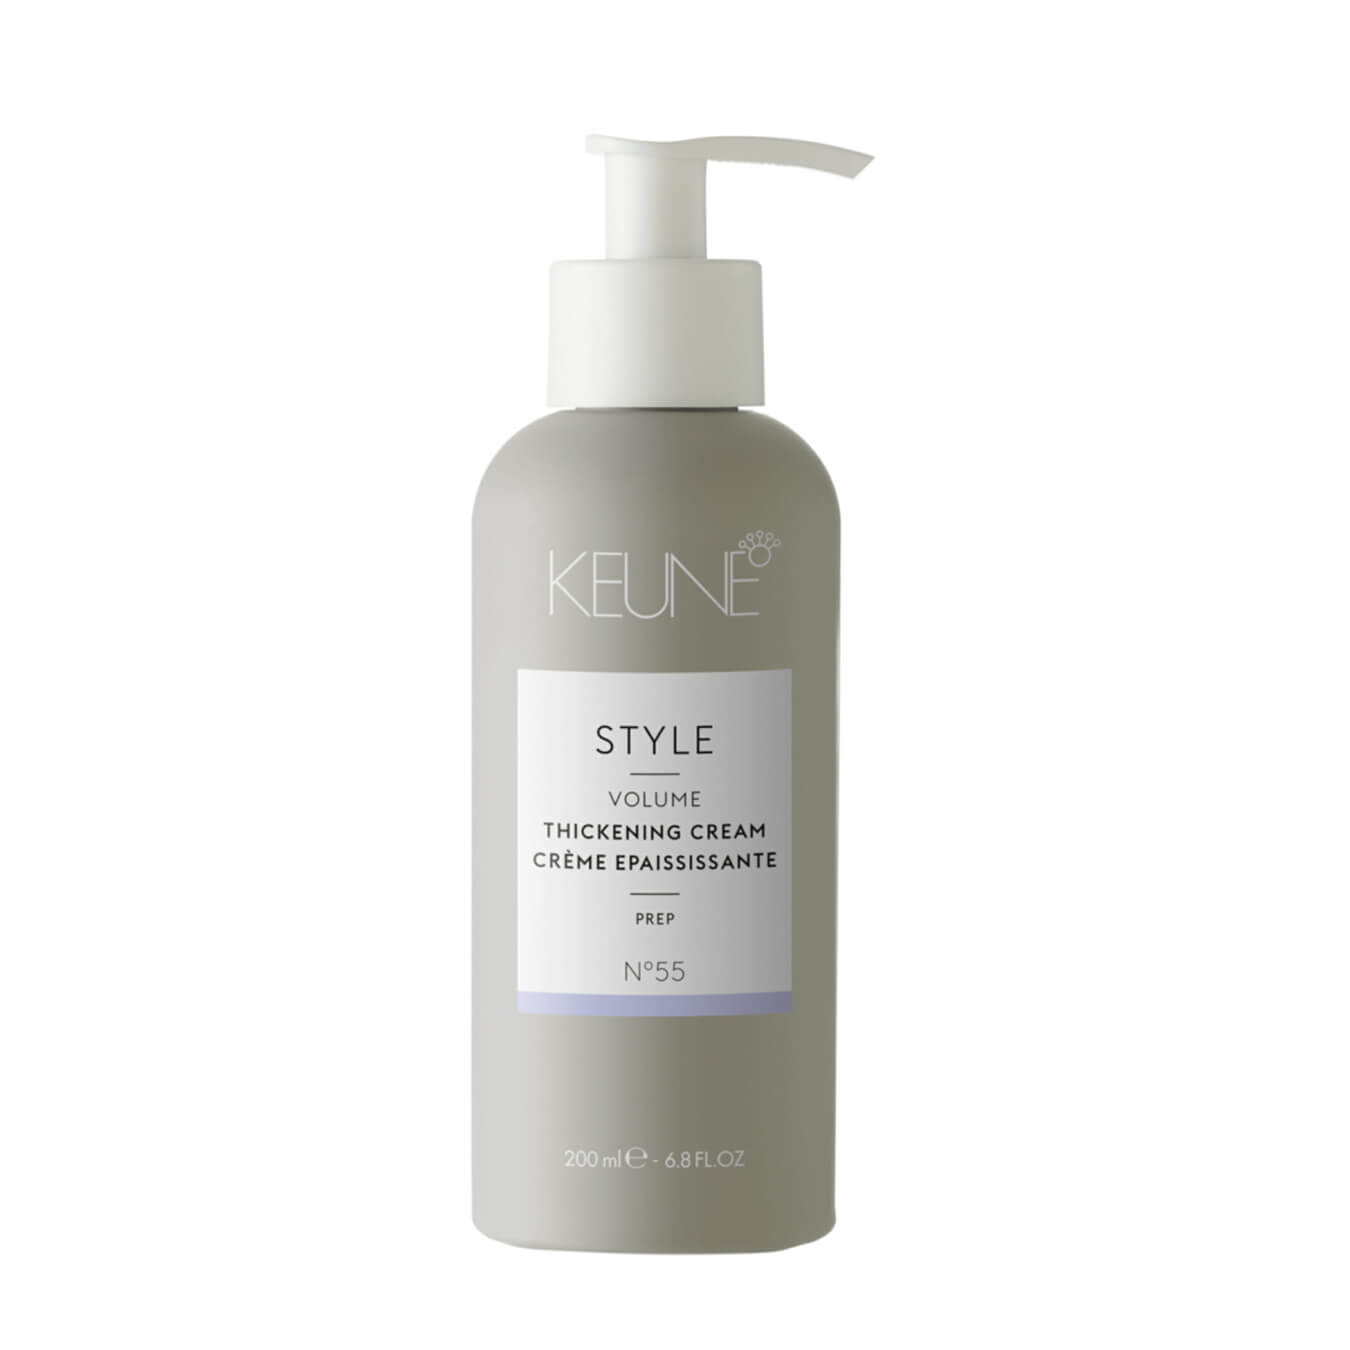 Koop Keune Style Thickening Cream 200ml